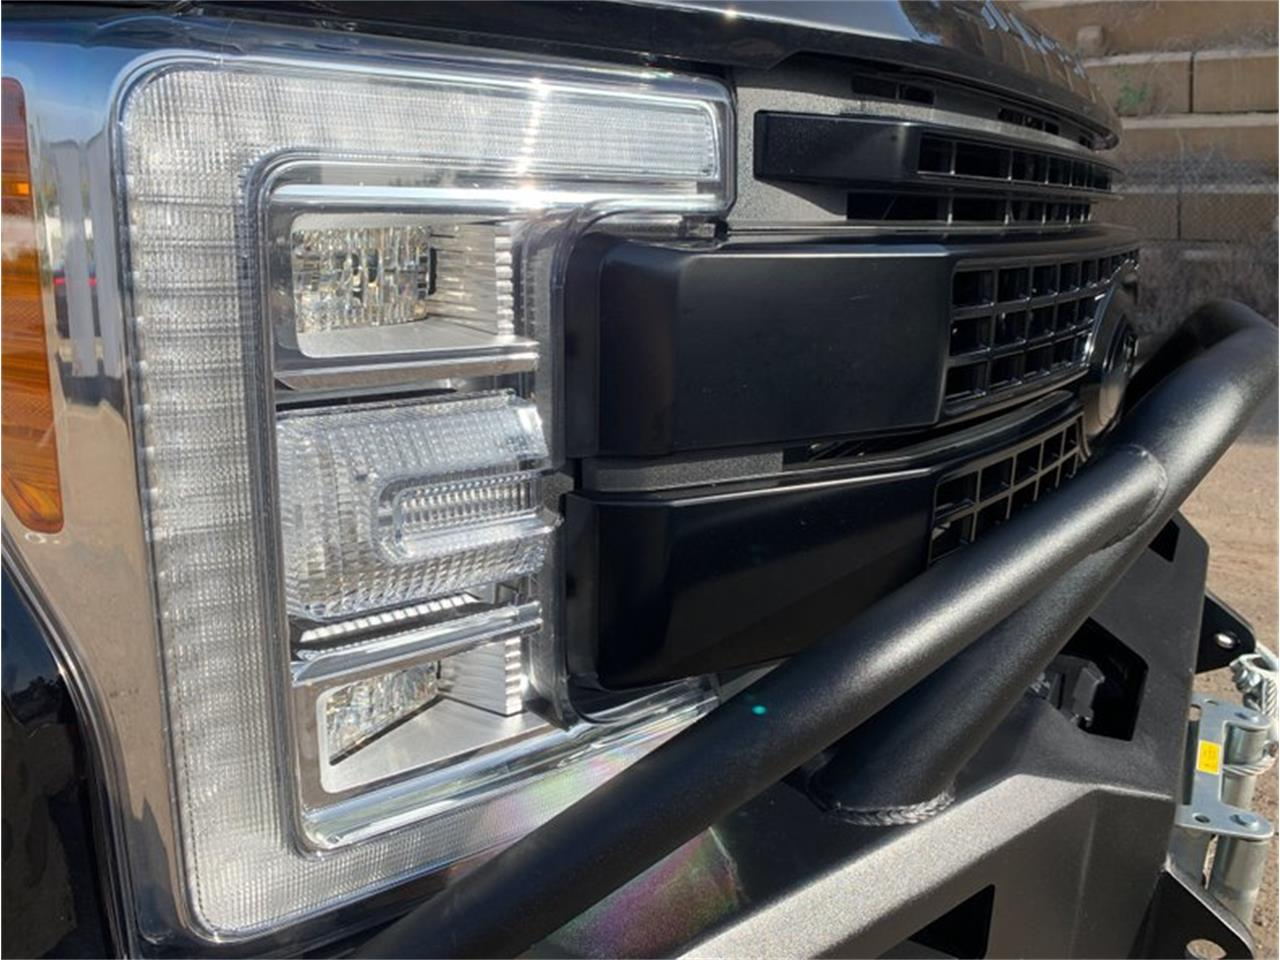 2017 Ford F250 (CC-1297424) for sale in San Diego, California